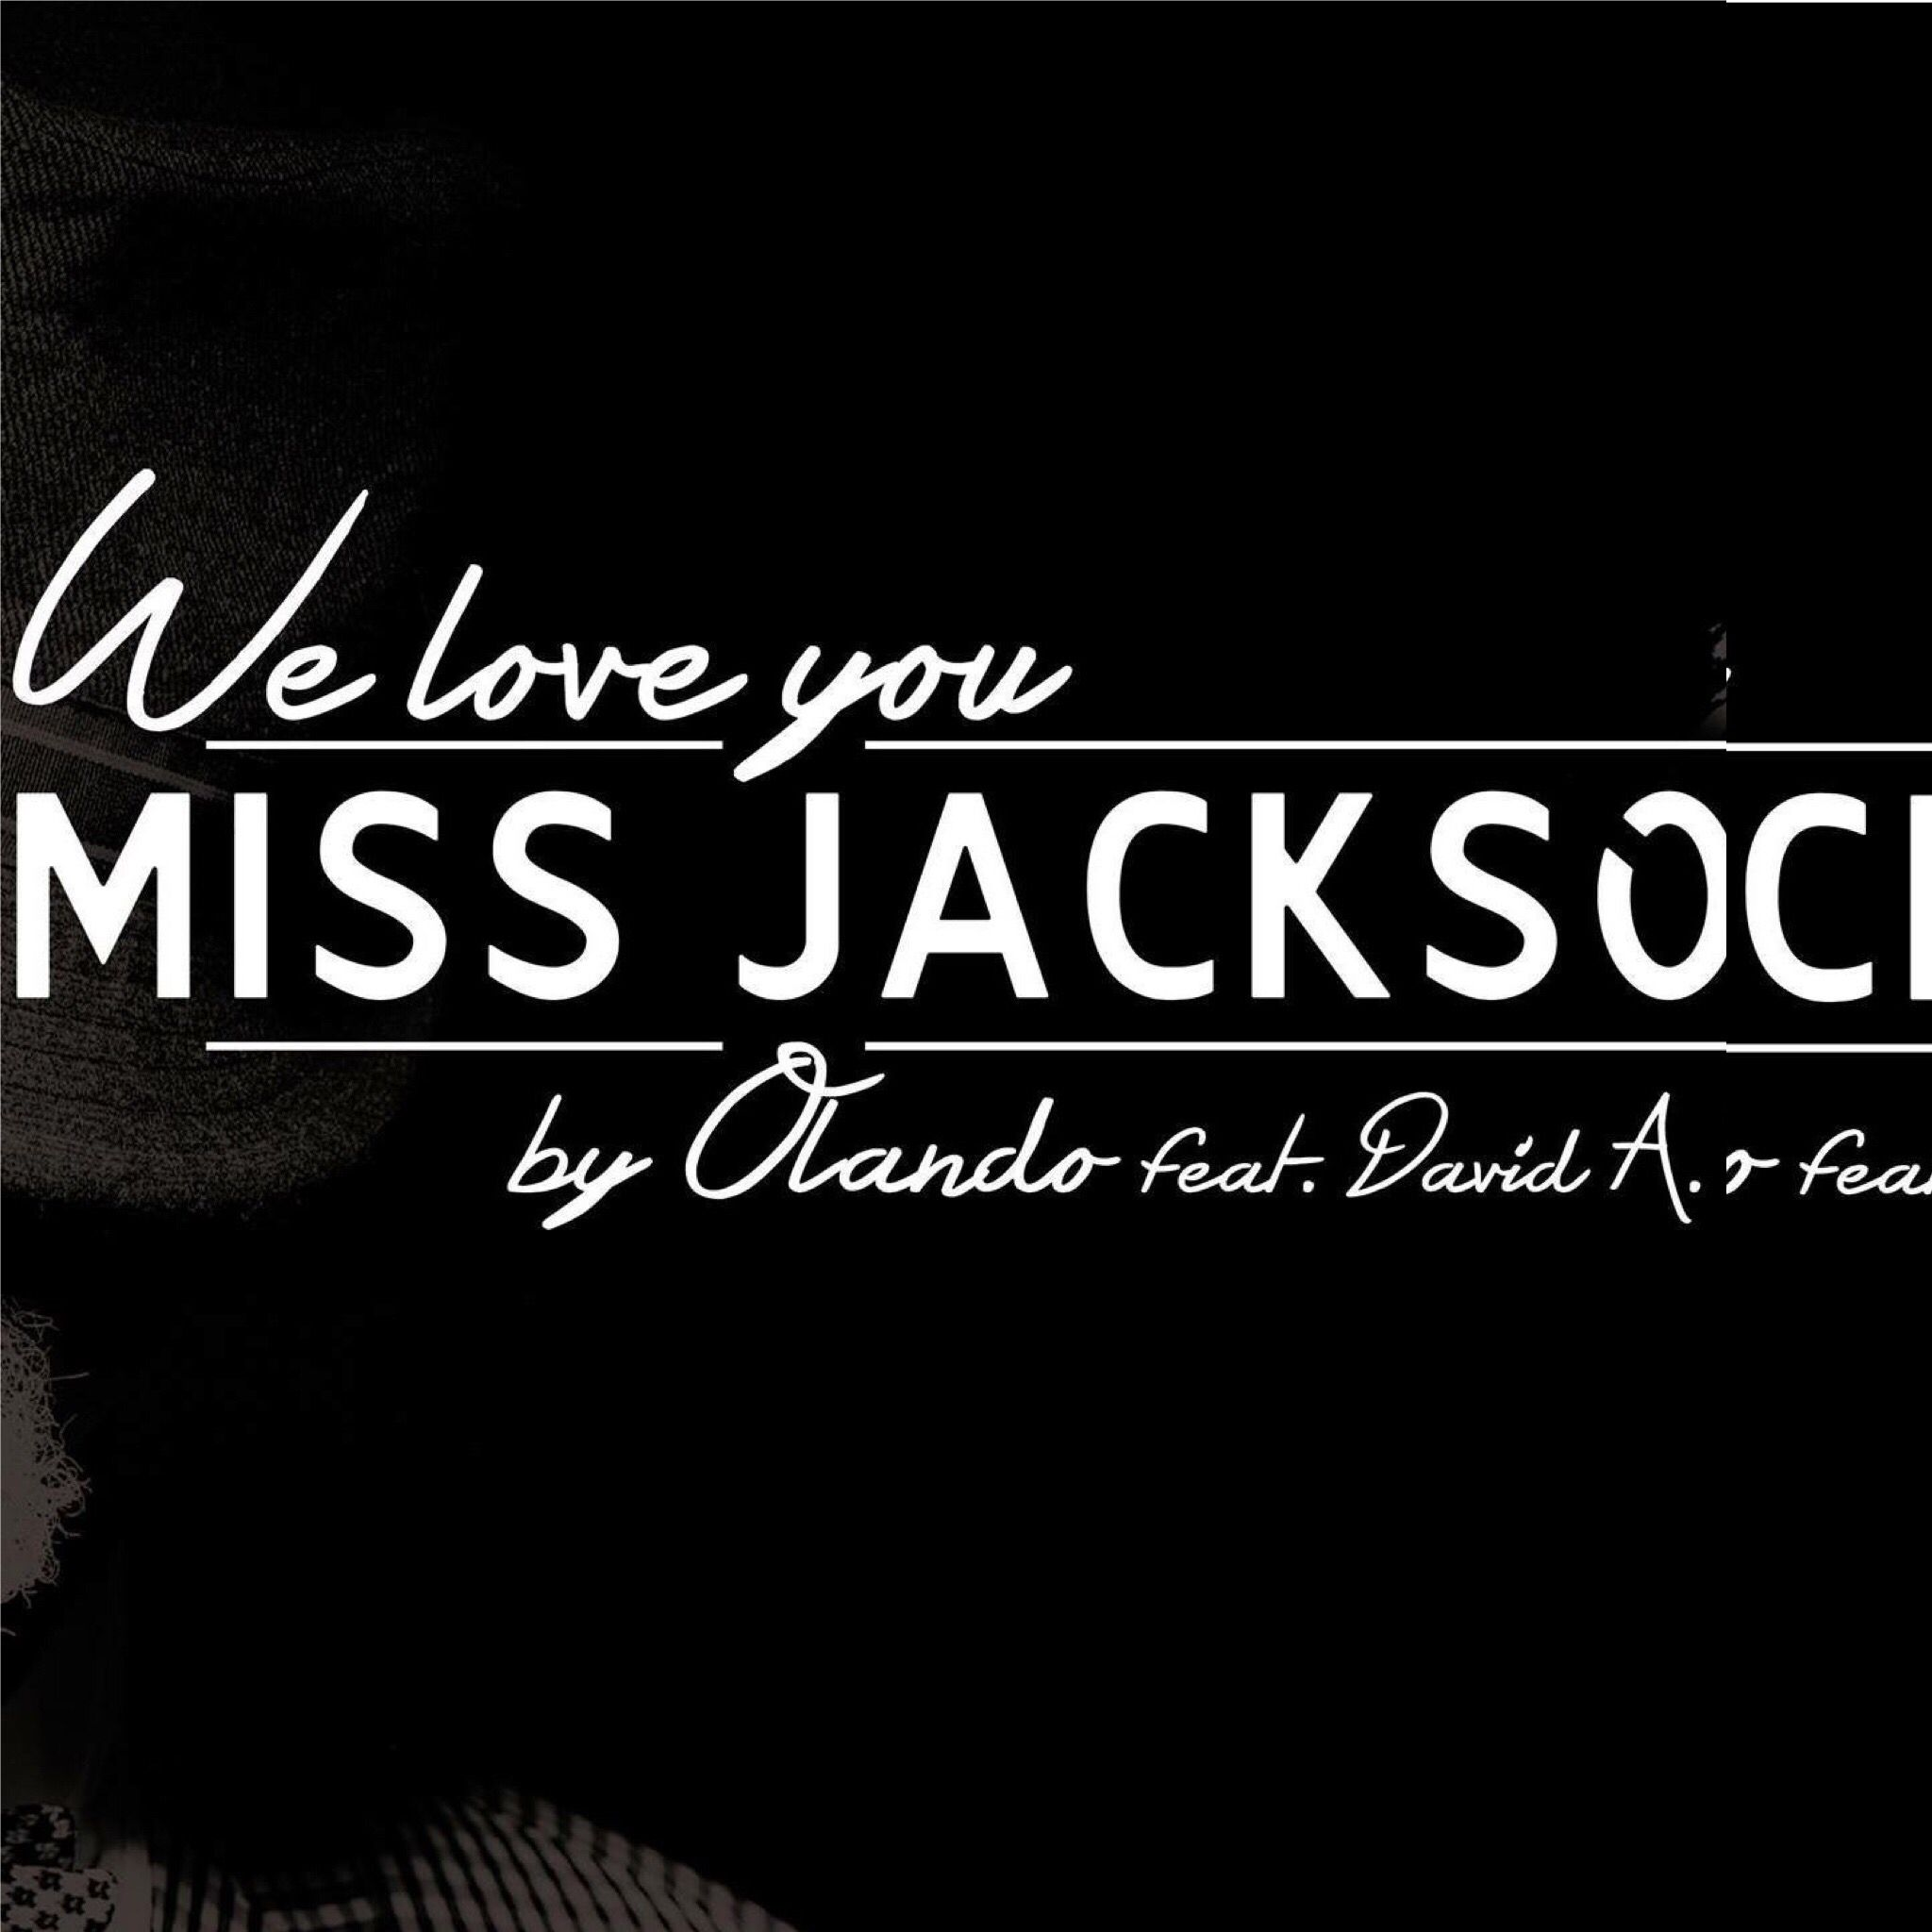 """This is the official release of """"Miss Jackson"""" - a tribute song to the one and only Queen of Pop, Ms.Janet Jackson by #olando (https://www.facebook.com/olandoartist) feat. David A.Tobin.  As stated in the song: """"We love you Miss Jackson.""""  ... Join us in helping this track to reach the Official Chart countdown Germany, Uk, USA, or wherever you are! :) Check in your Itunes Account, Download it from Amazon or Google Play (or any other Music download plattforms)  Enjoy listening!!!"""